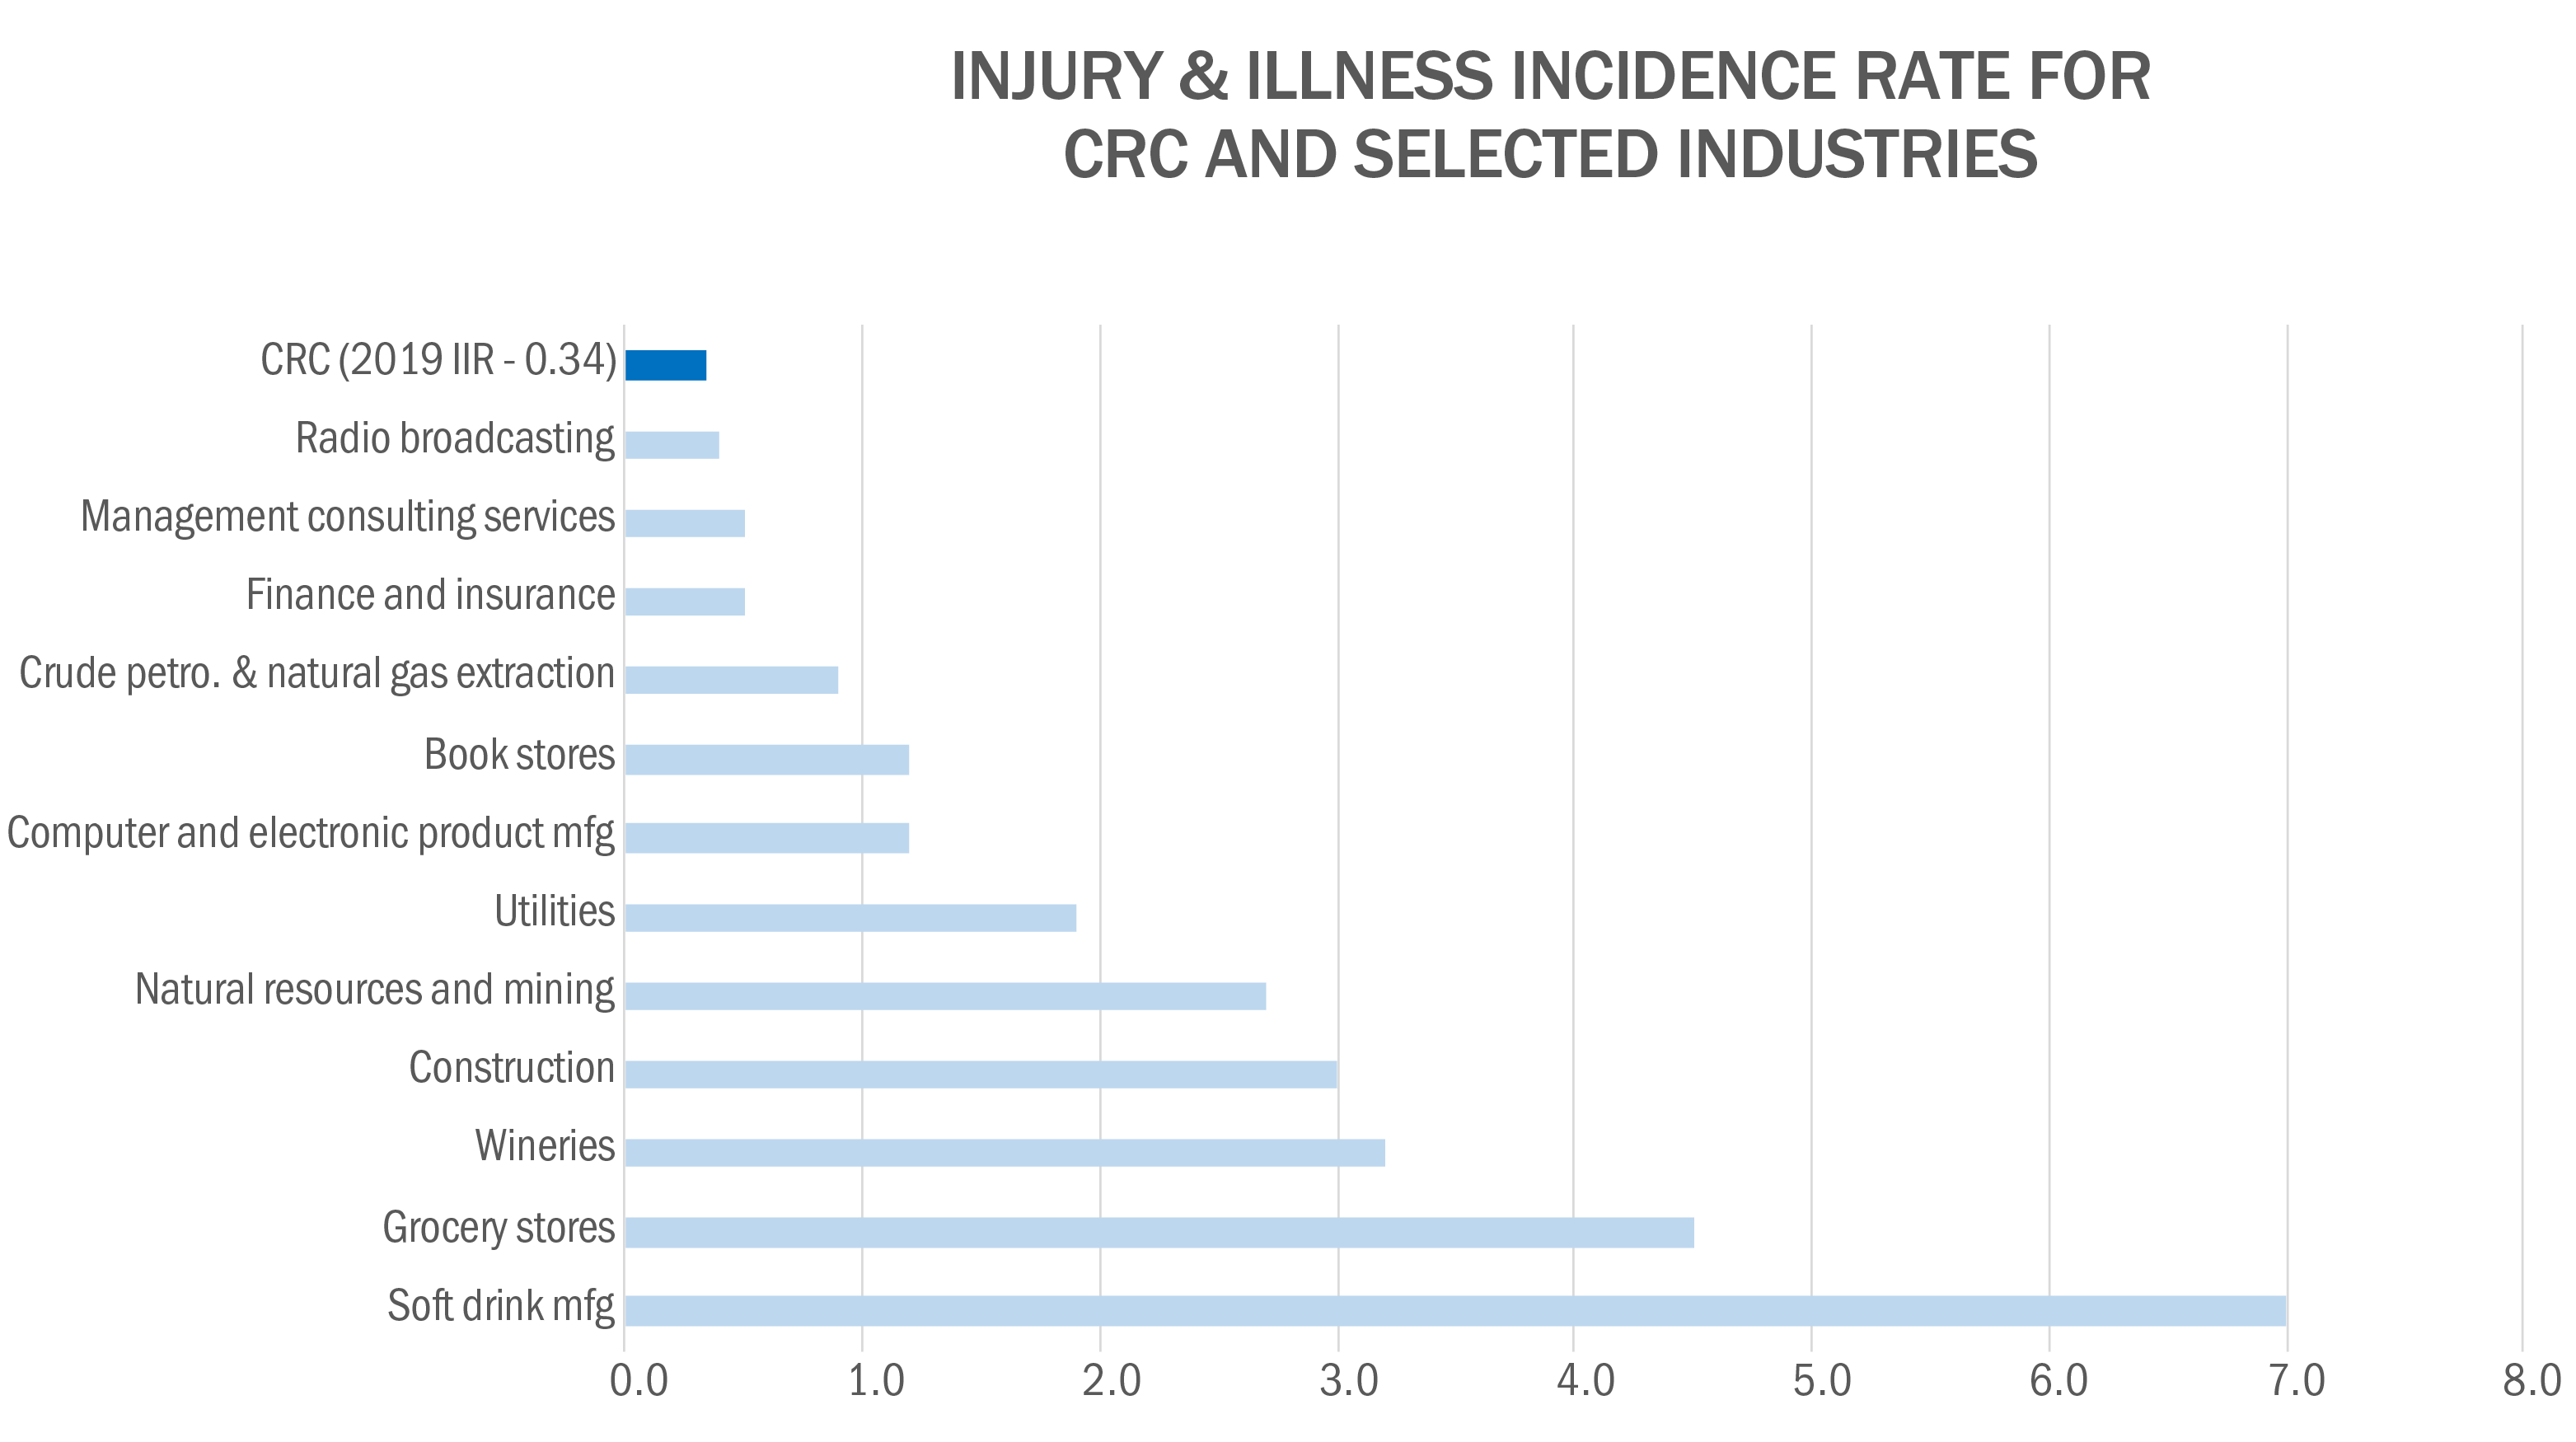 Injury & Illness Incidence Rate for CRC and Selected Industries Image